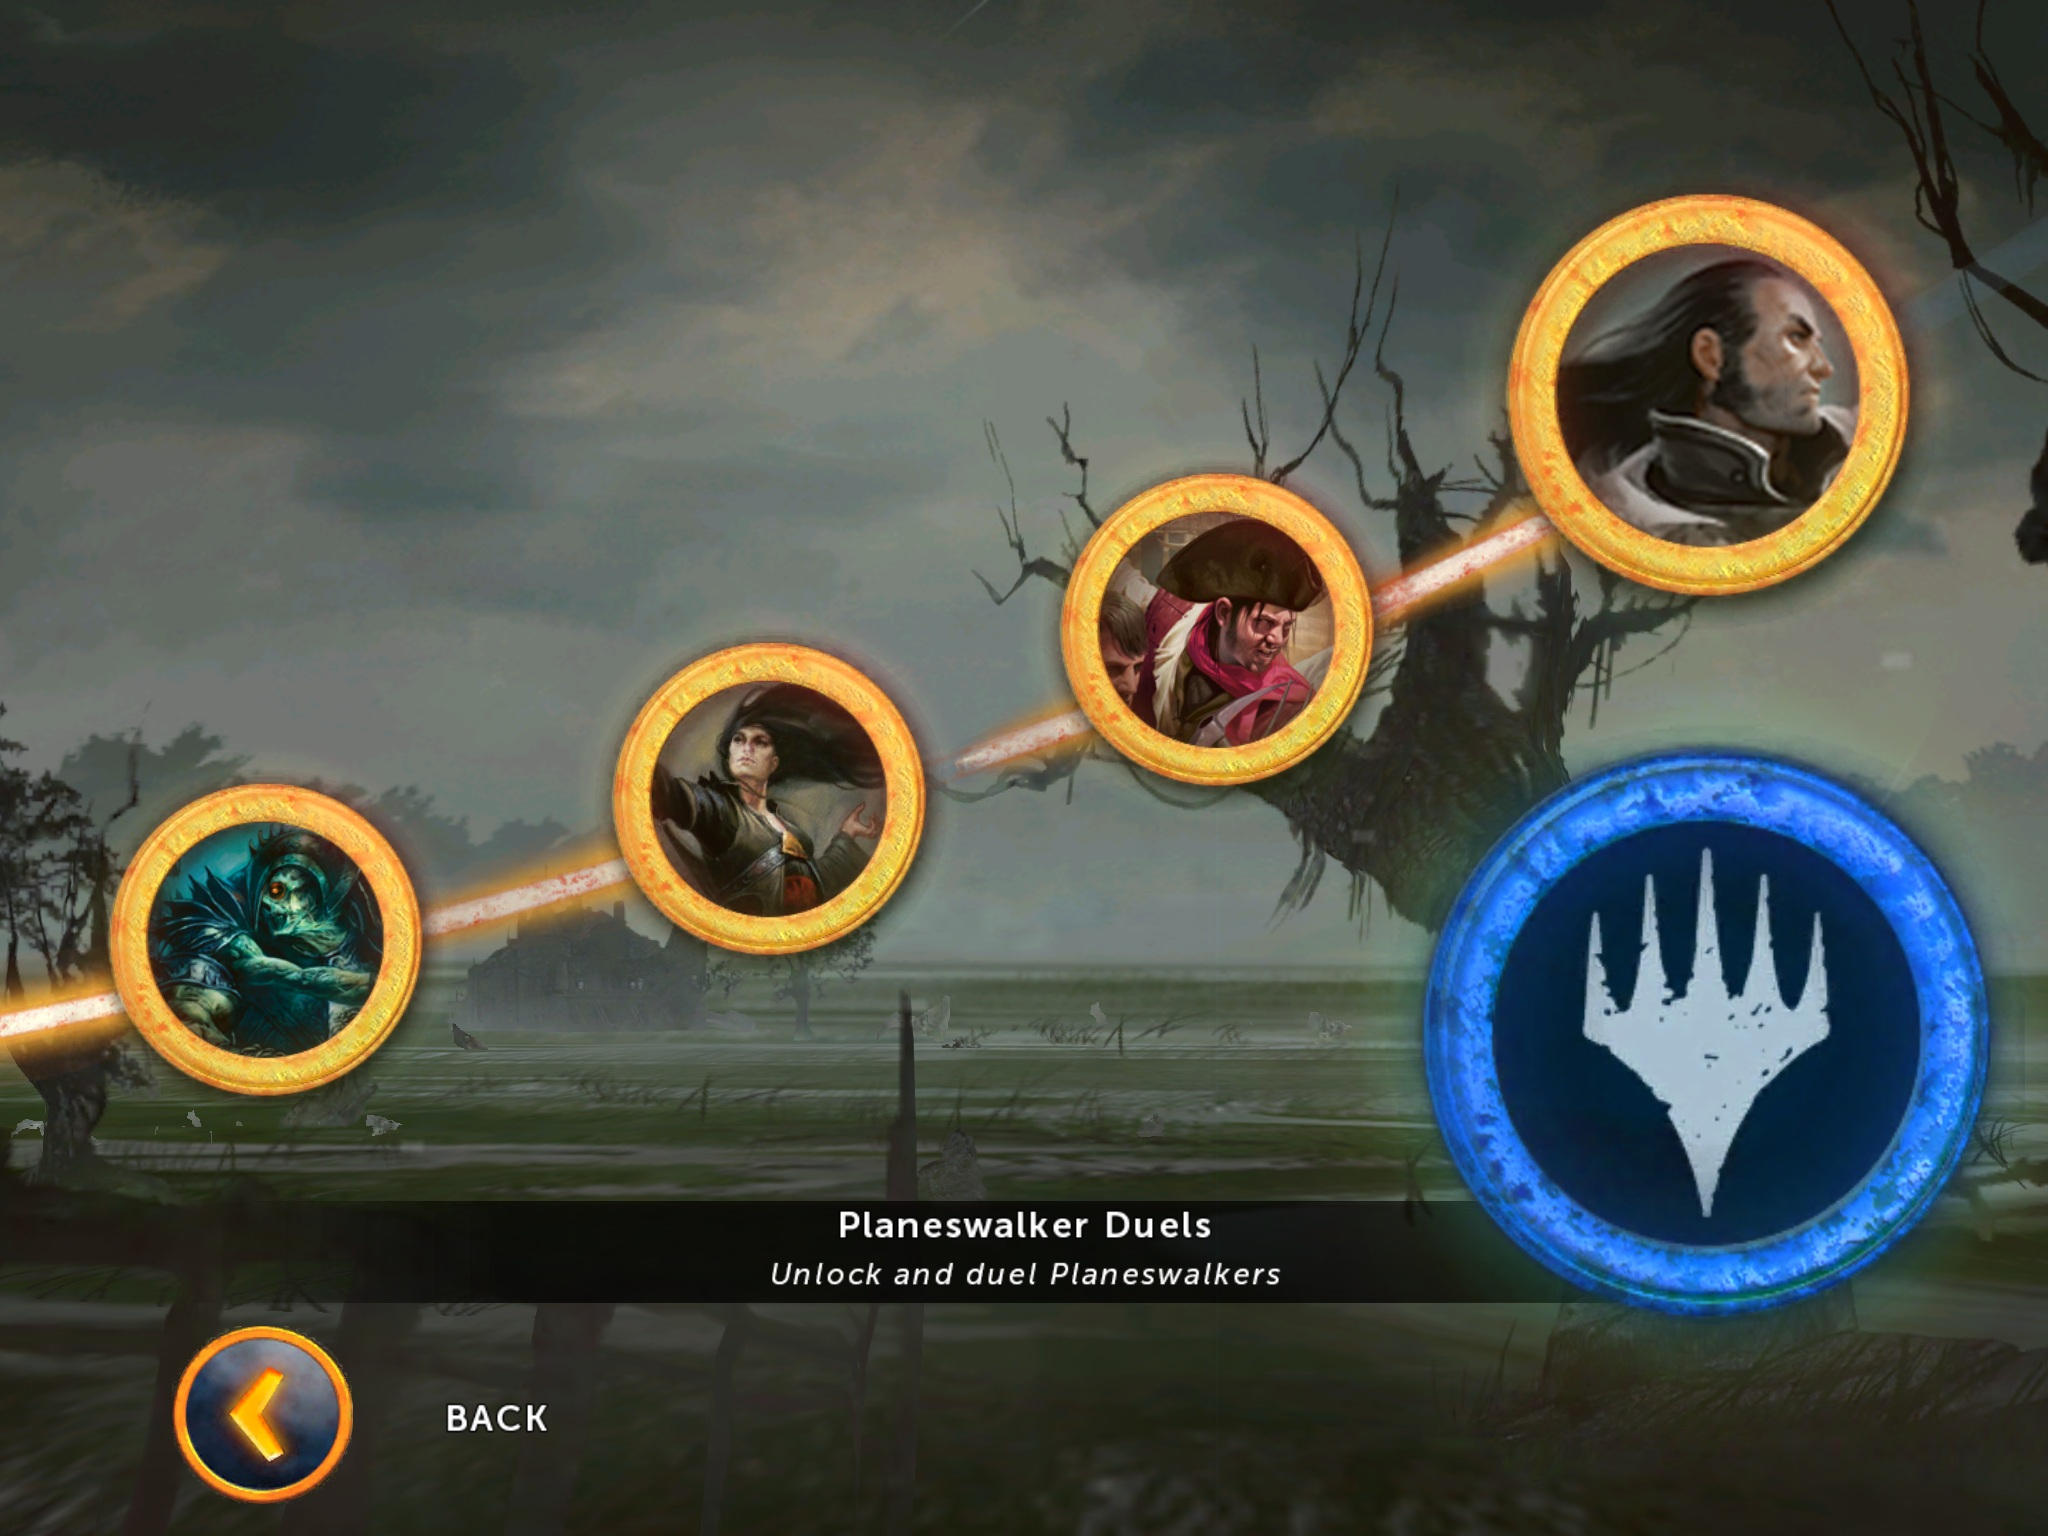 E3 2013: New details surface on Magic 2014 - Duels of the Planeswalkers